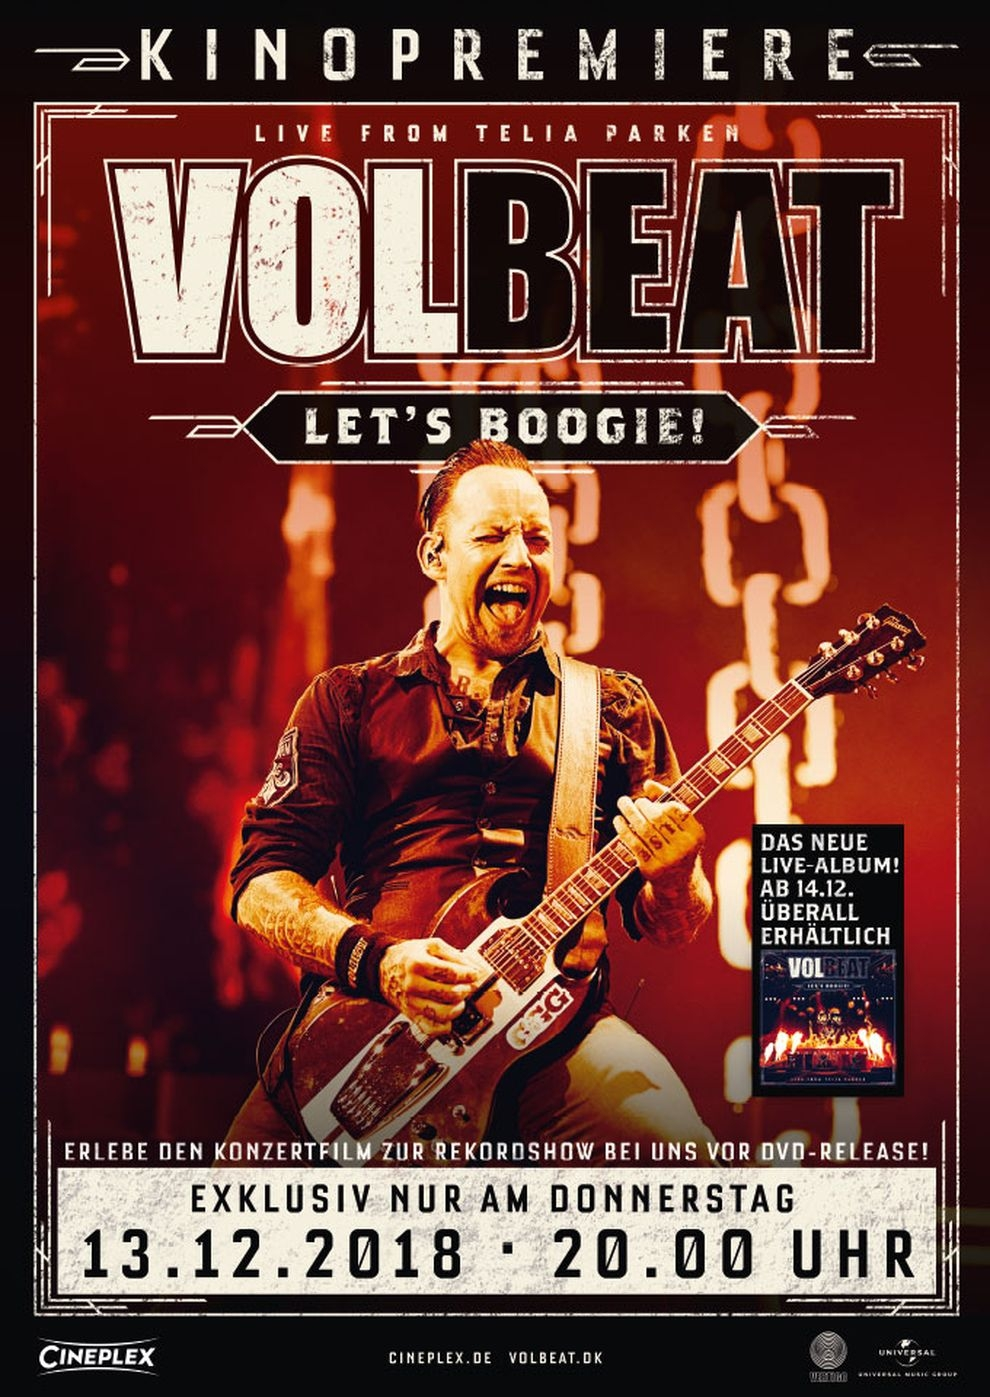 VOLBEAT-Let's Boogie! Live from Telia Parken (Poster)